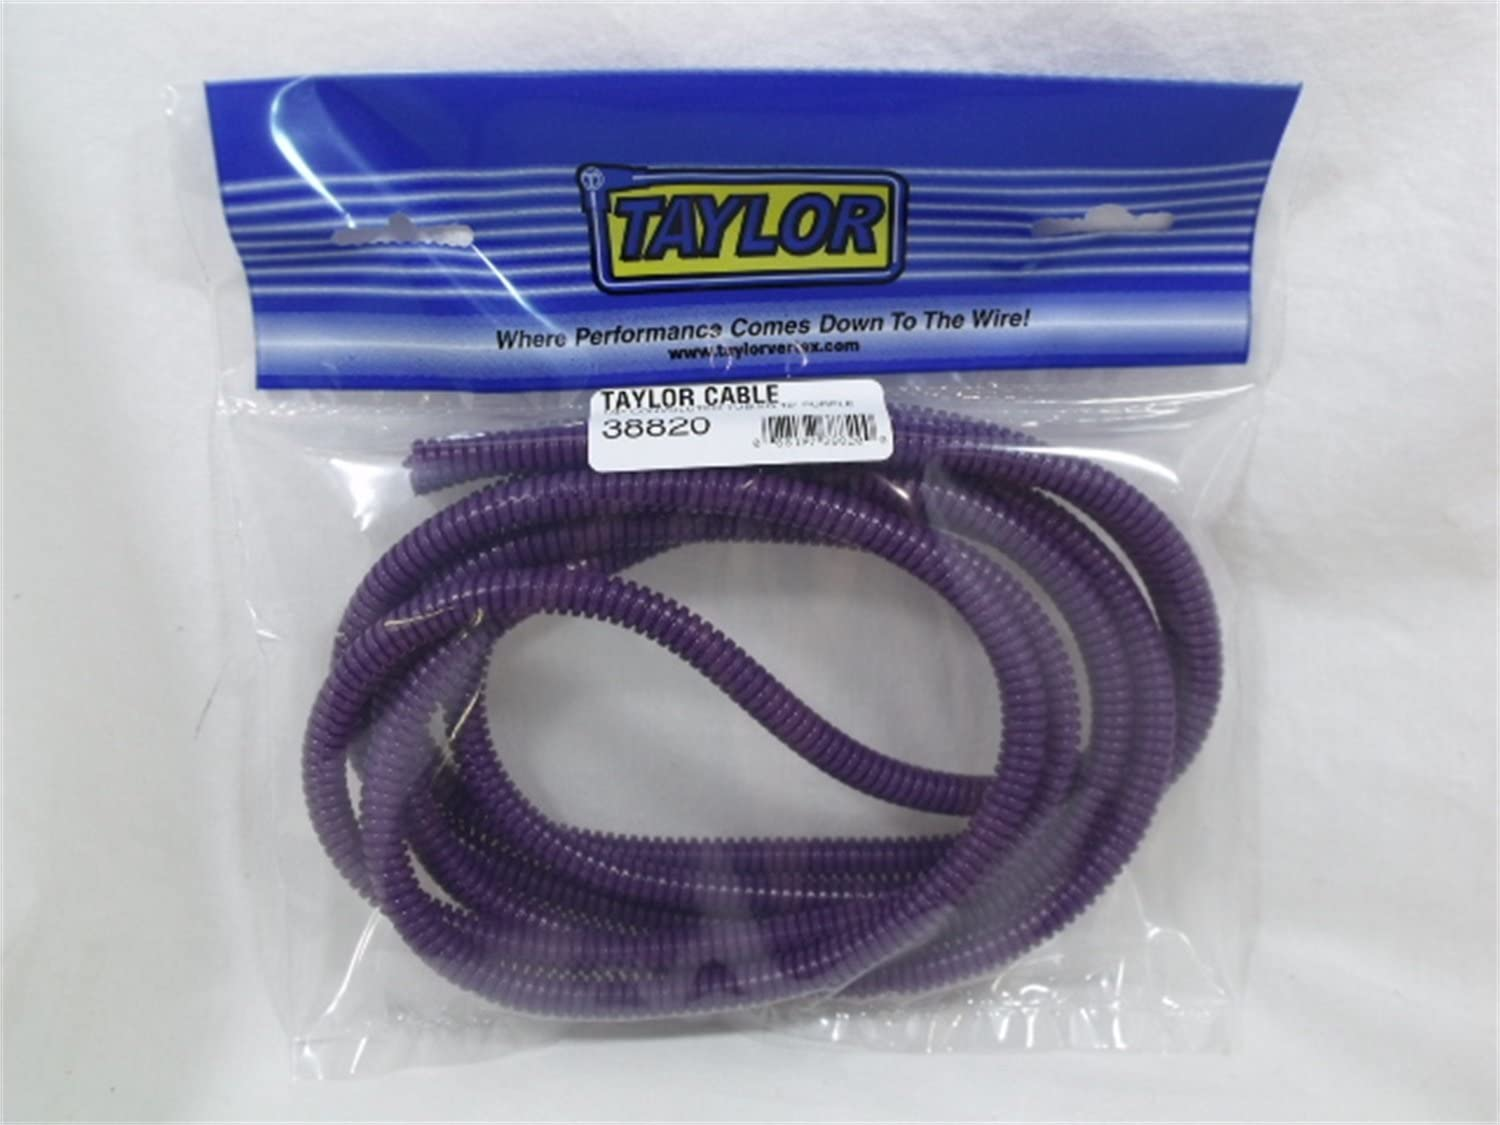 Taylor Cable 38820 Purple Convoluted Tubing